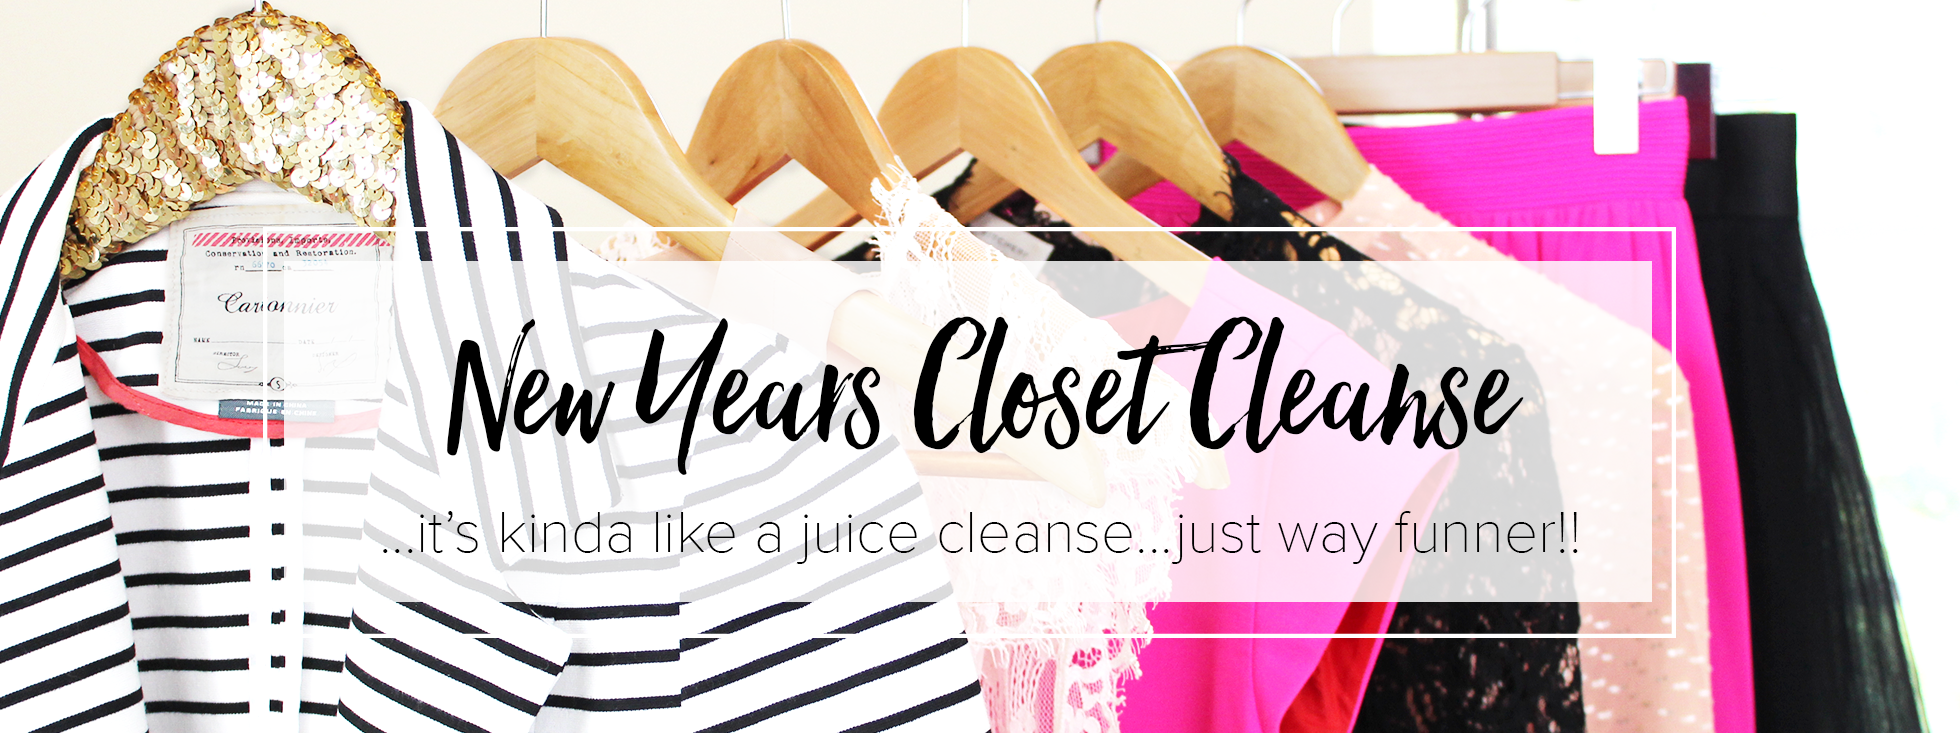 new-years-closet-cleanse-challenge